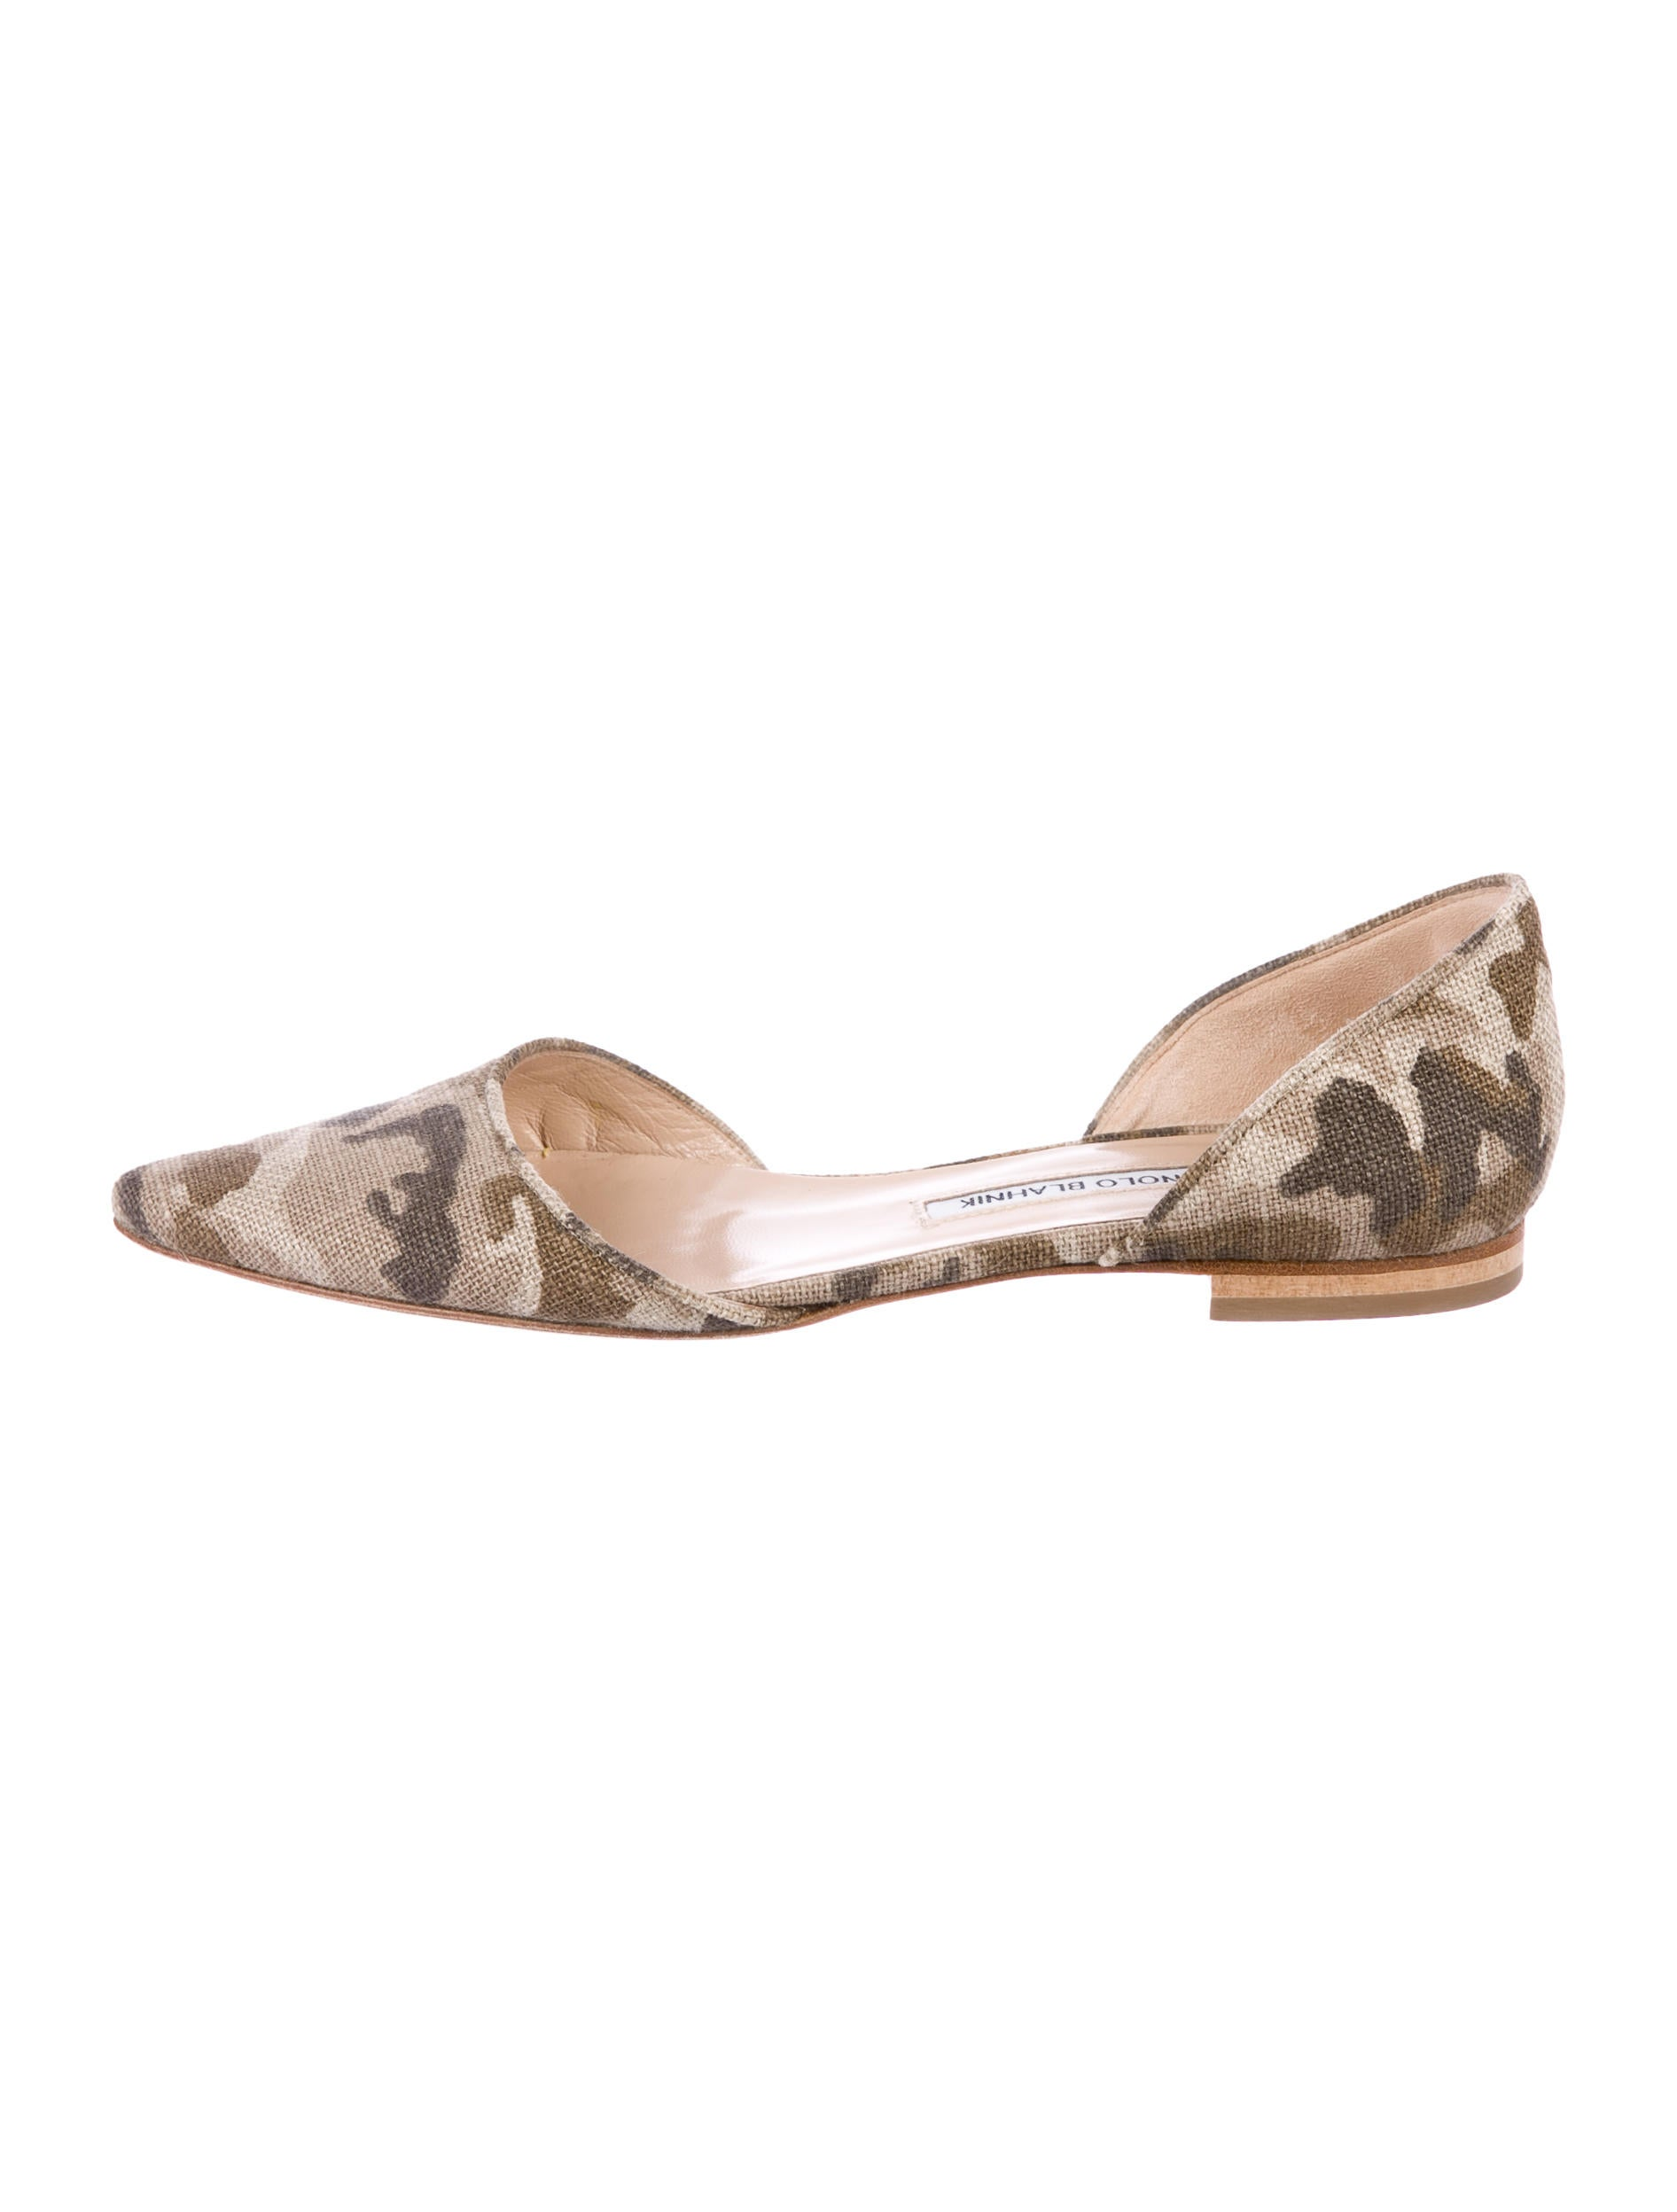 Manolo Blahnik Camouflage d'Orsay Flats visit new online manchester great sale cheap online buy cheap order clearance for cheap Oy88S6la